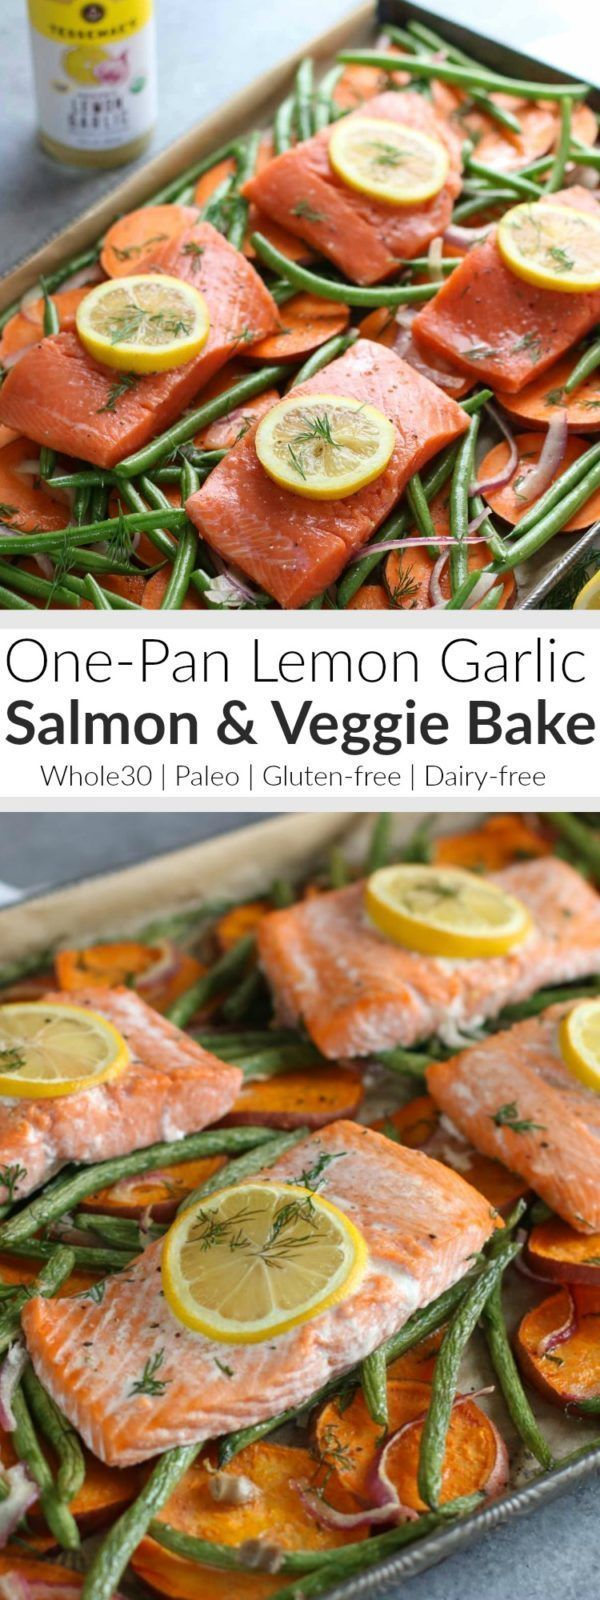 Make life easier this week with our Lemon Garlic One-Pan Salmon and Veggie Bake. Just one pan and minimal clean up! Whole30 | Gluten-free | Dairy-free | Paleo | http://therealfoodrds.com/one-pan-salmo (Gluten Free Recipes Fish)